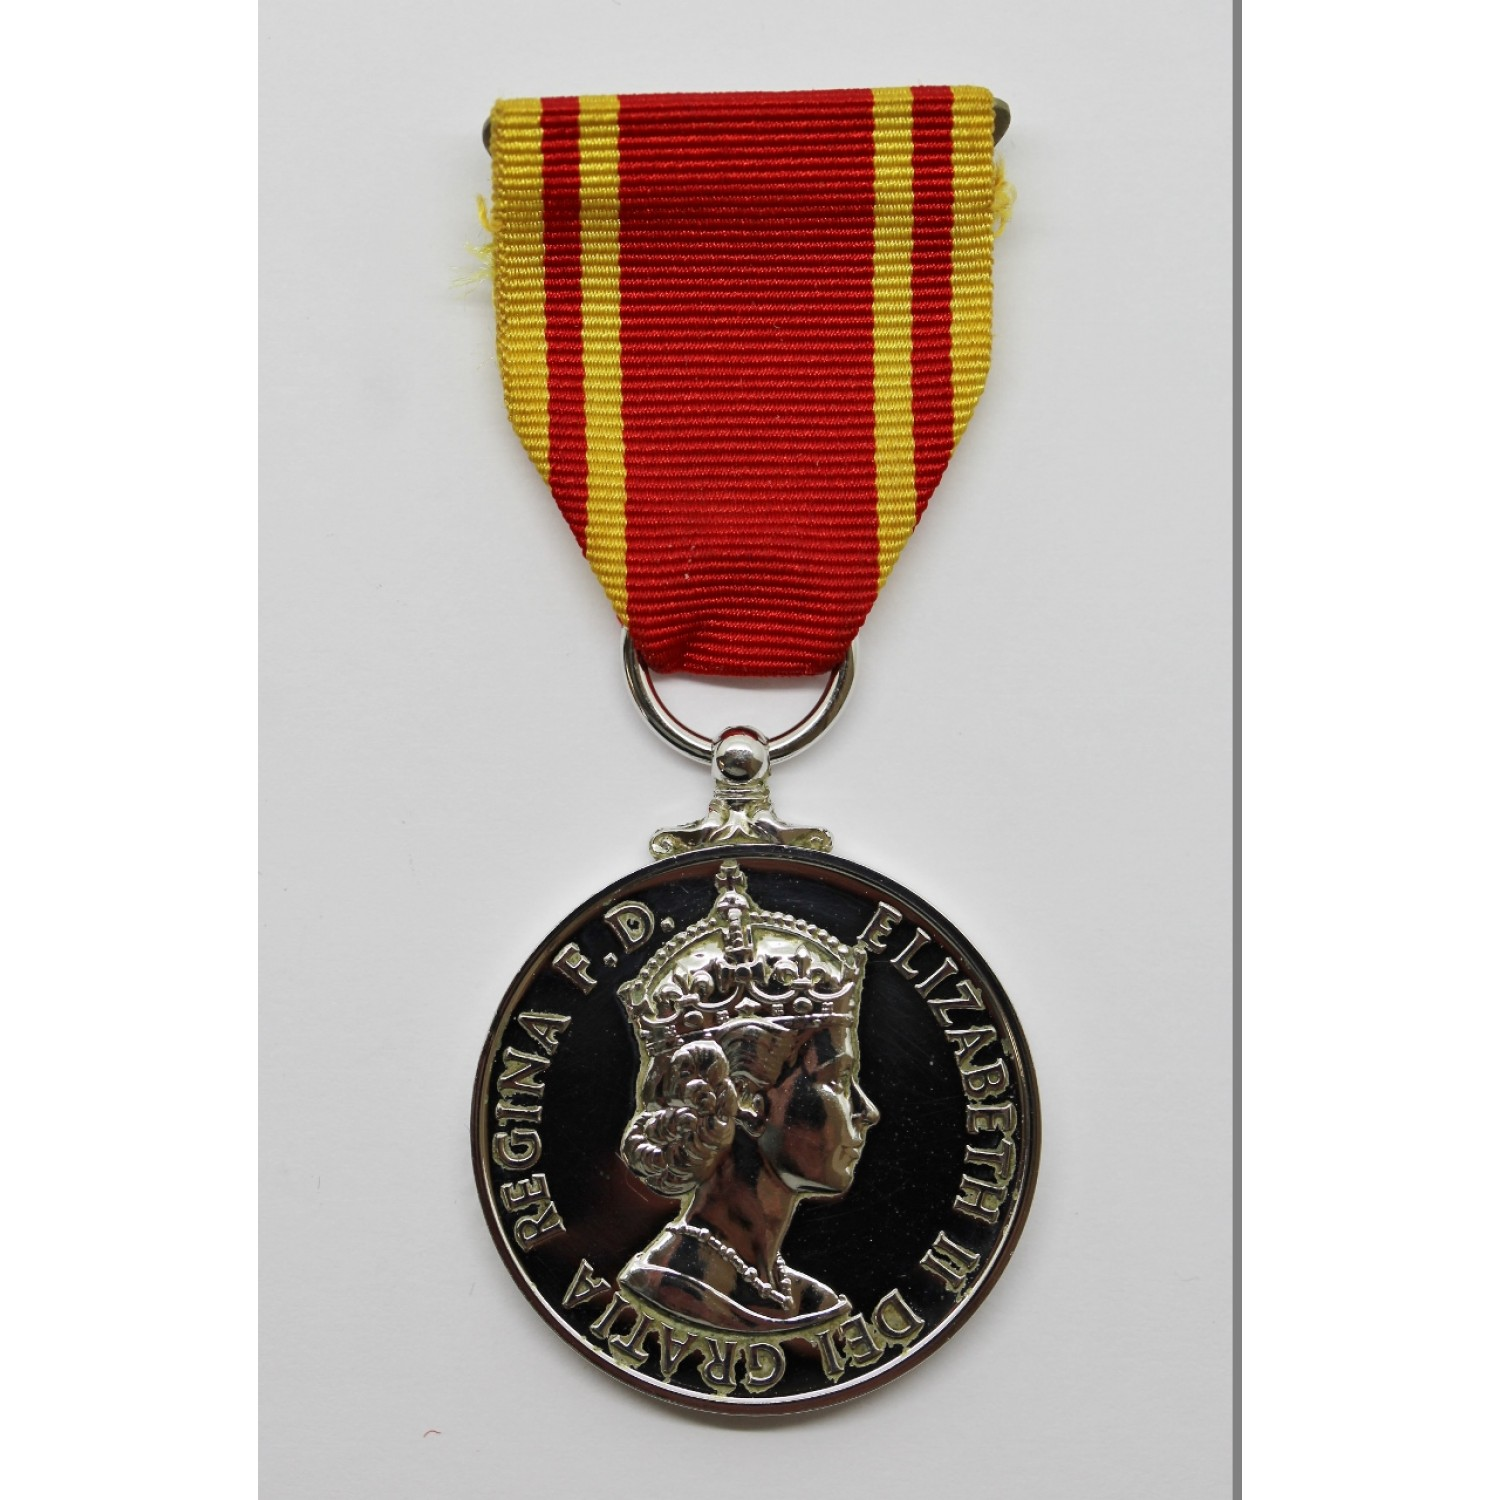 2019 year style- Service fire medals how to wear